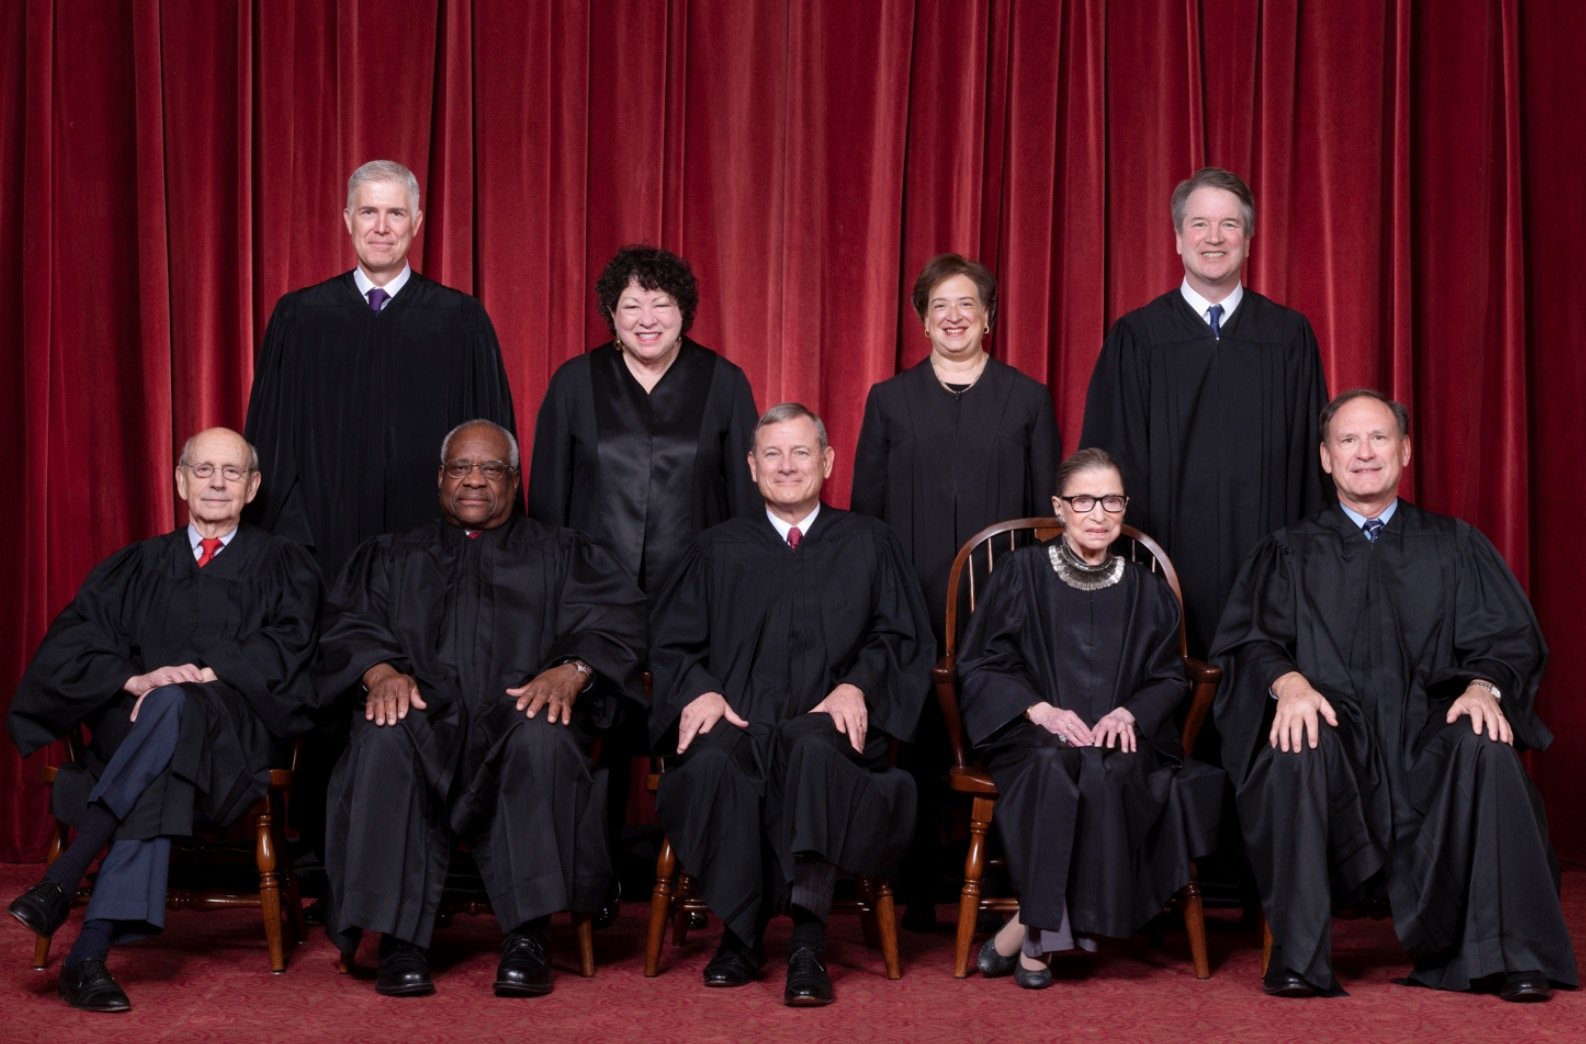 U.S. Supreme Court Rules to Protect LGBTQ+ Workers